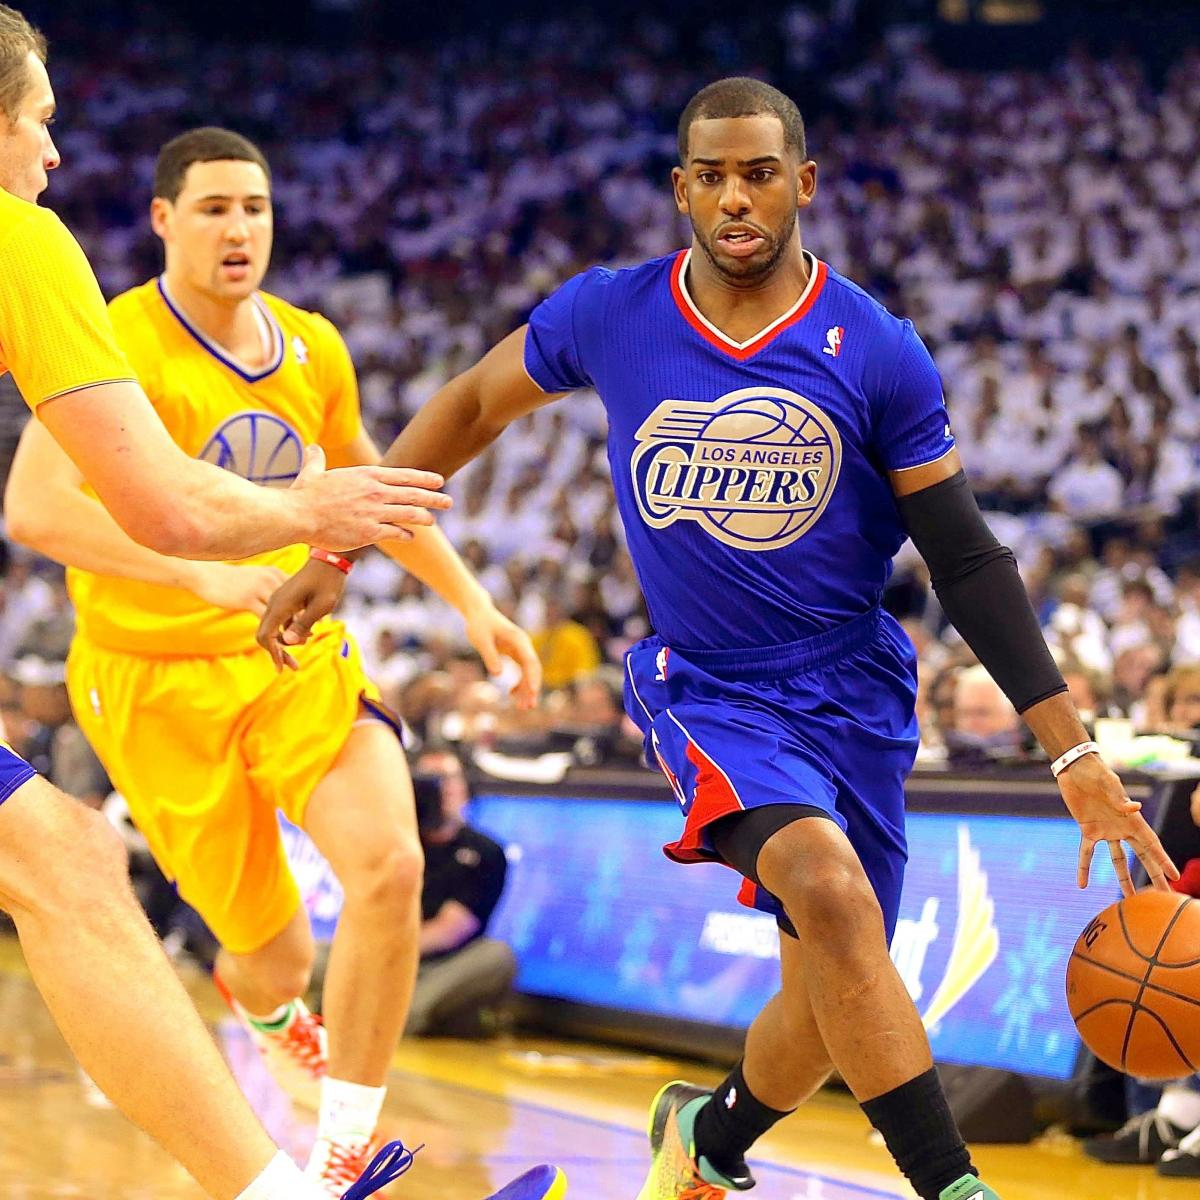 Warriors Vs Clippers Full Game Highlights